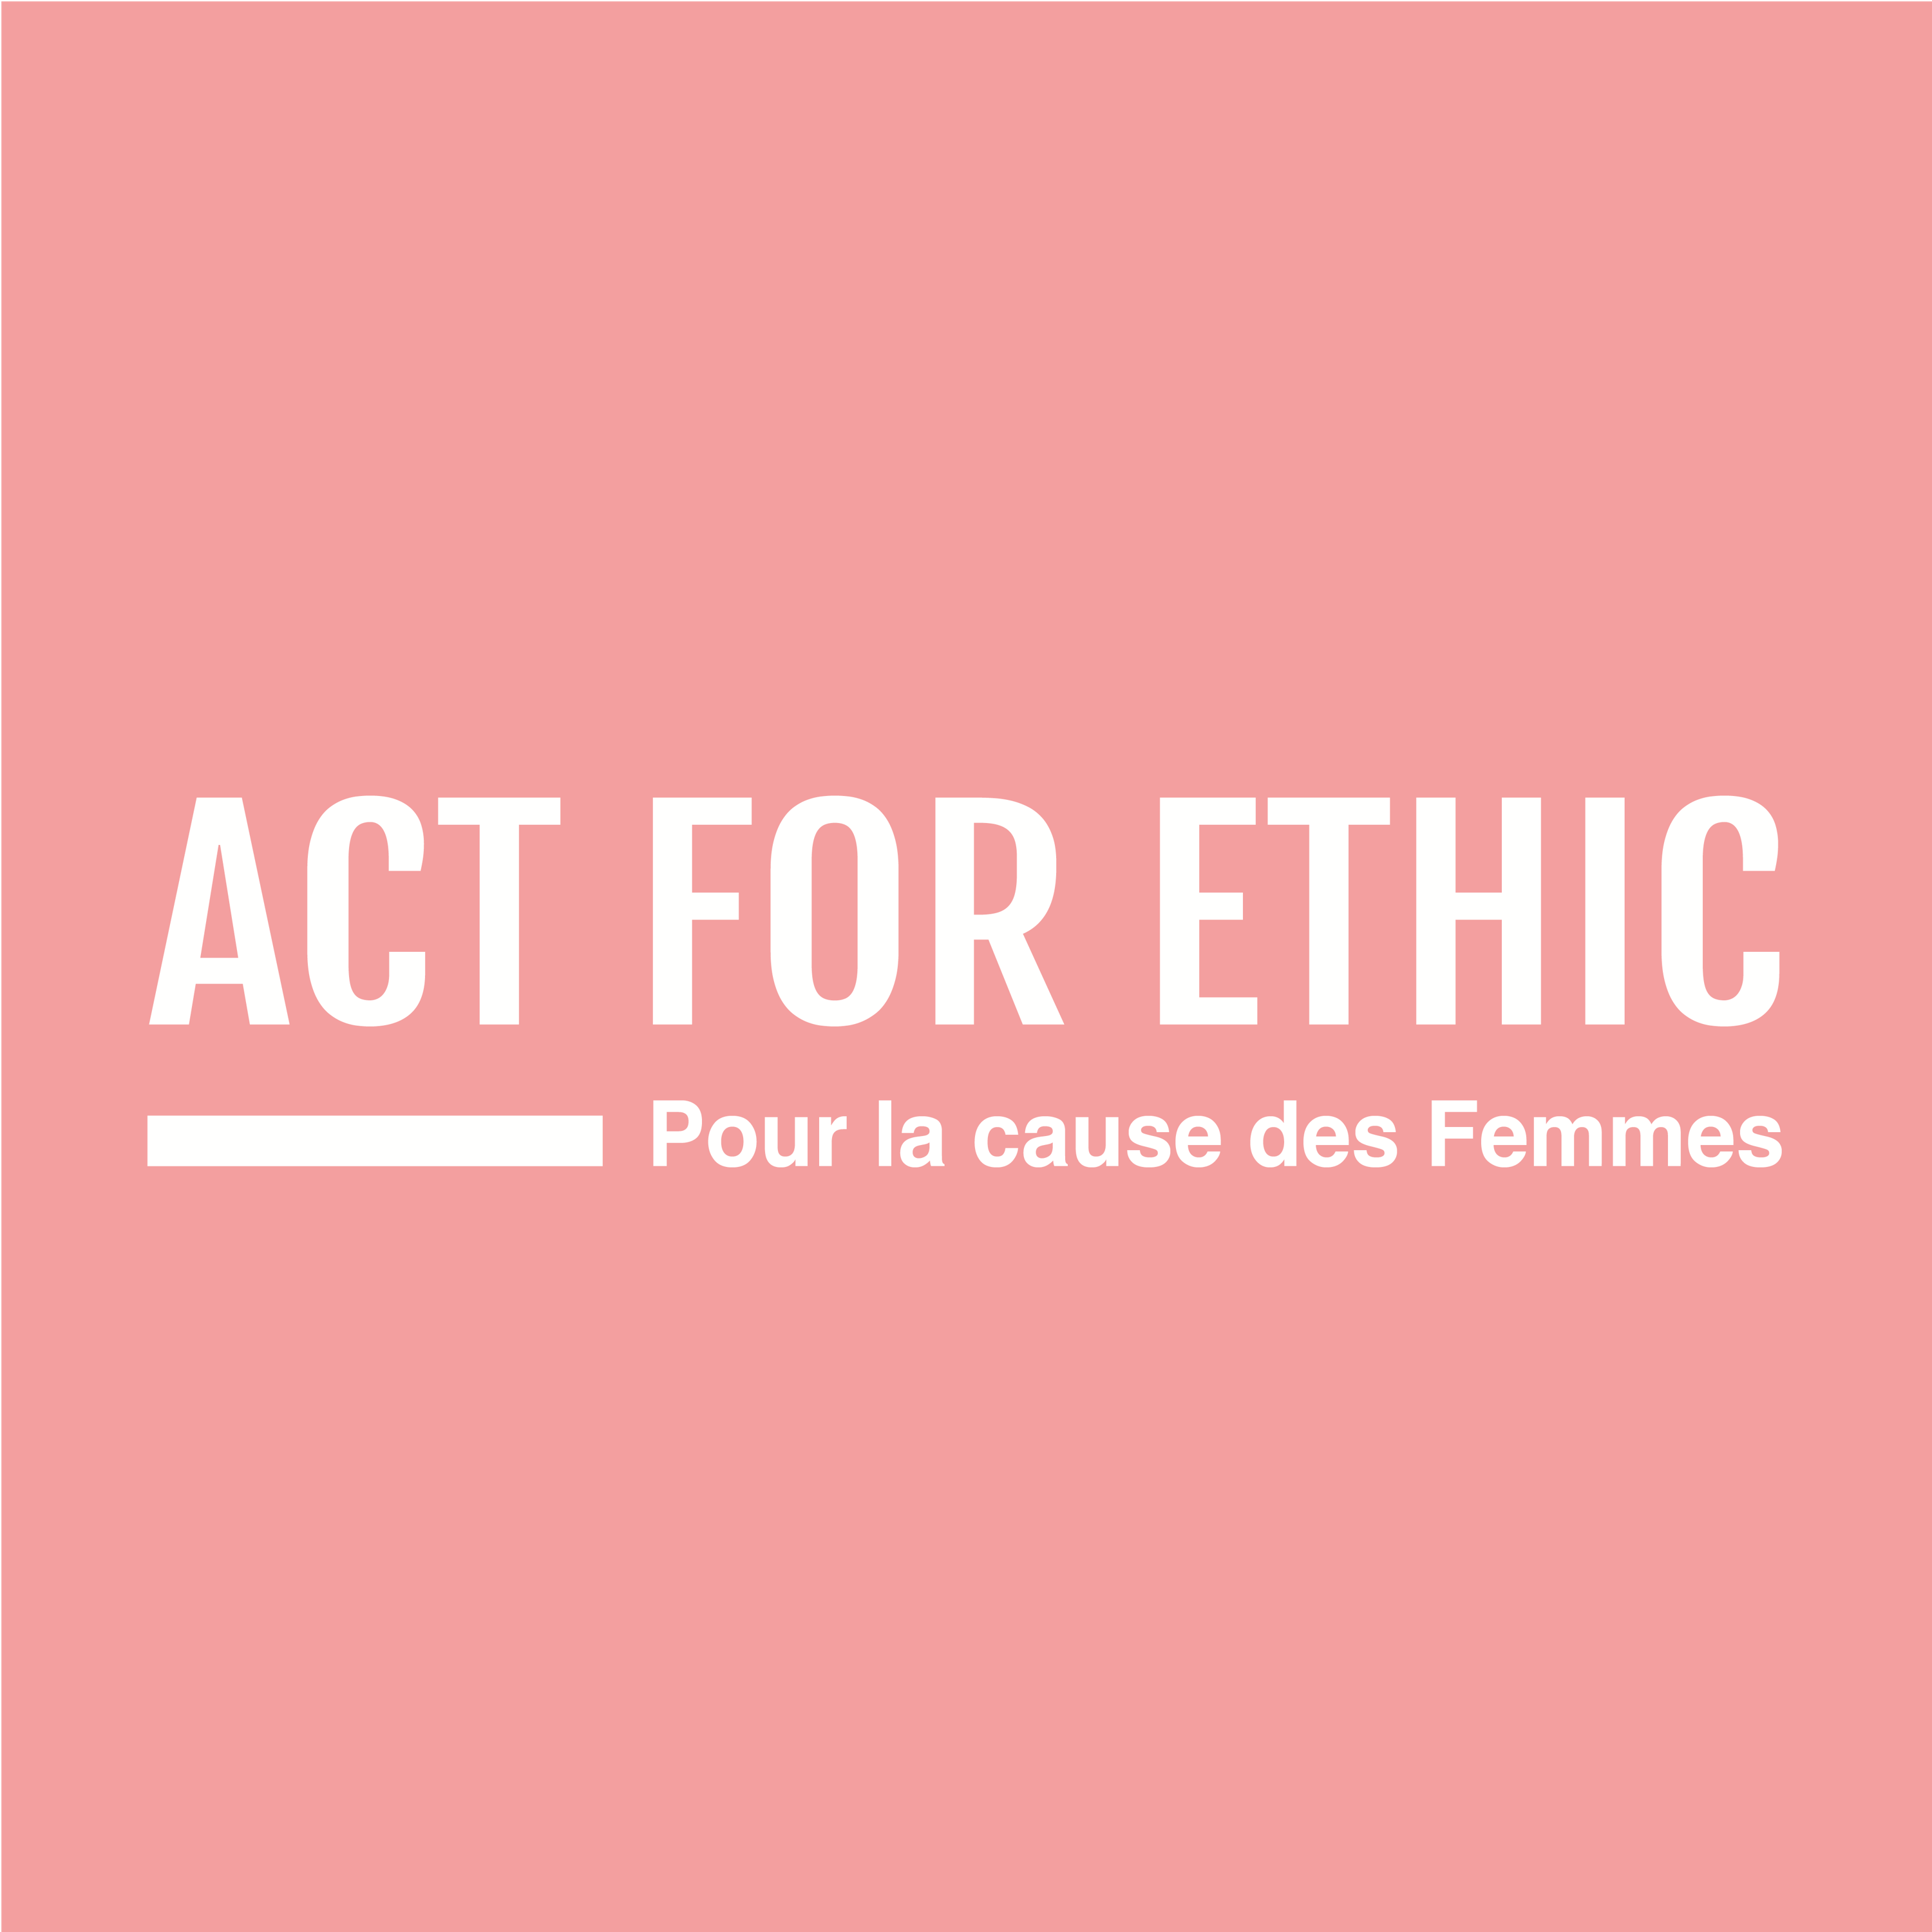 act for ethics, femme